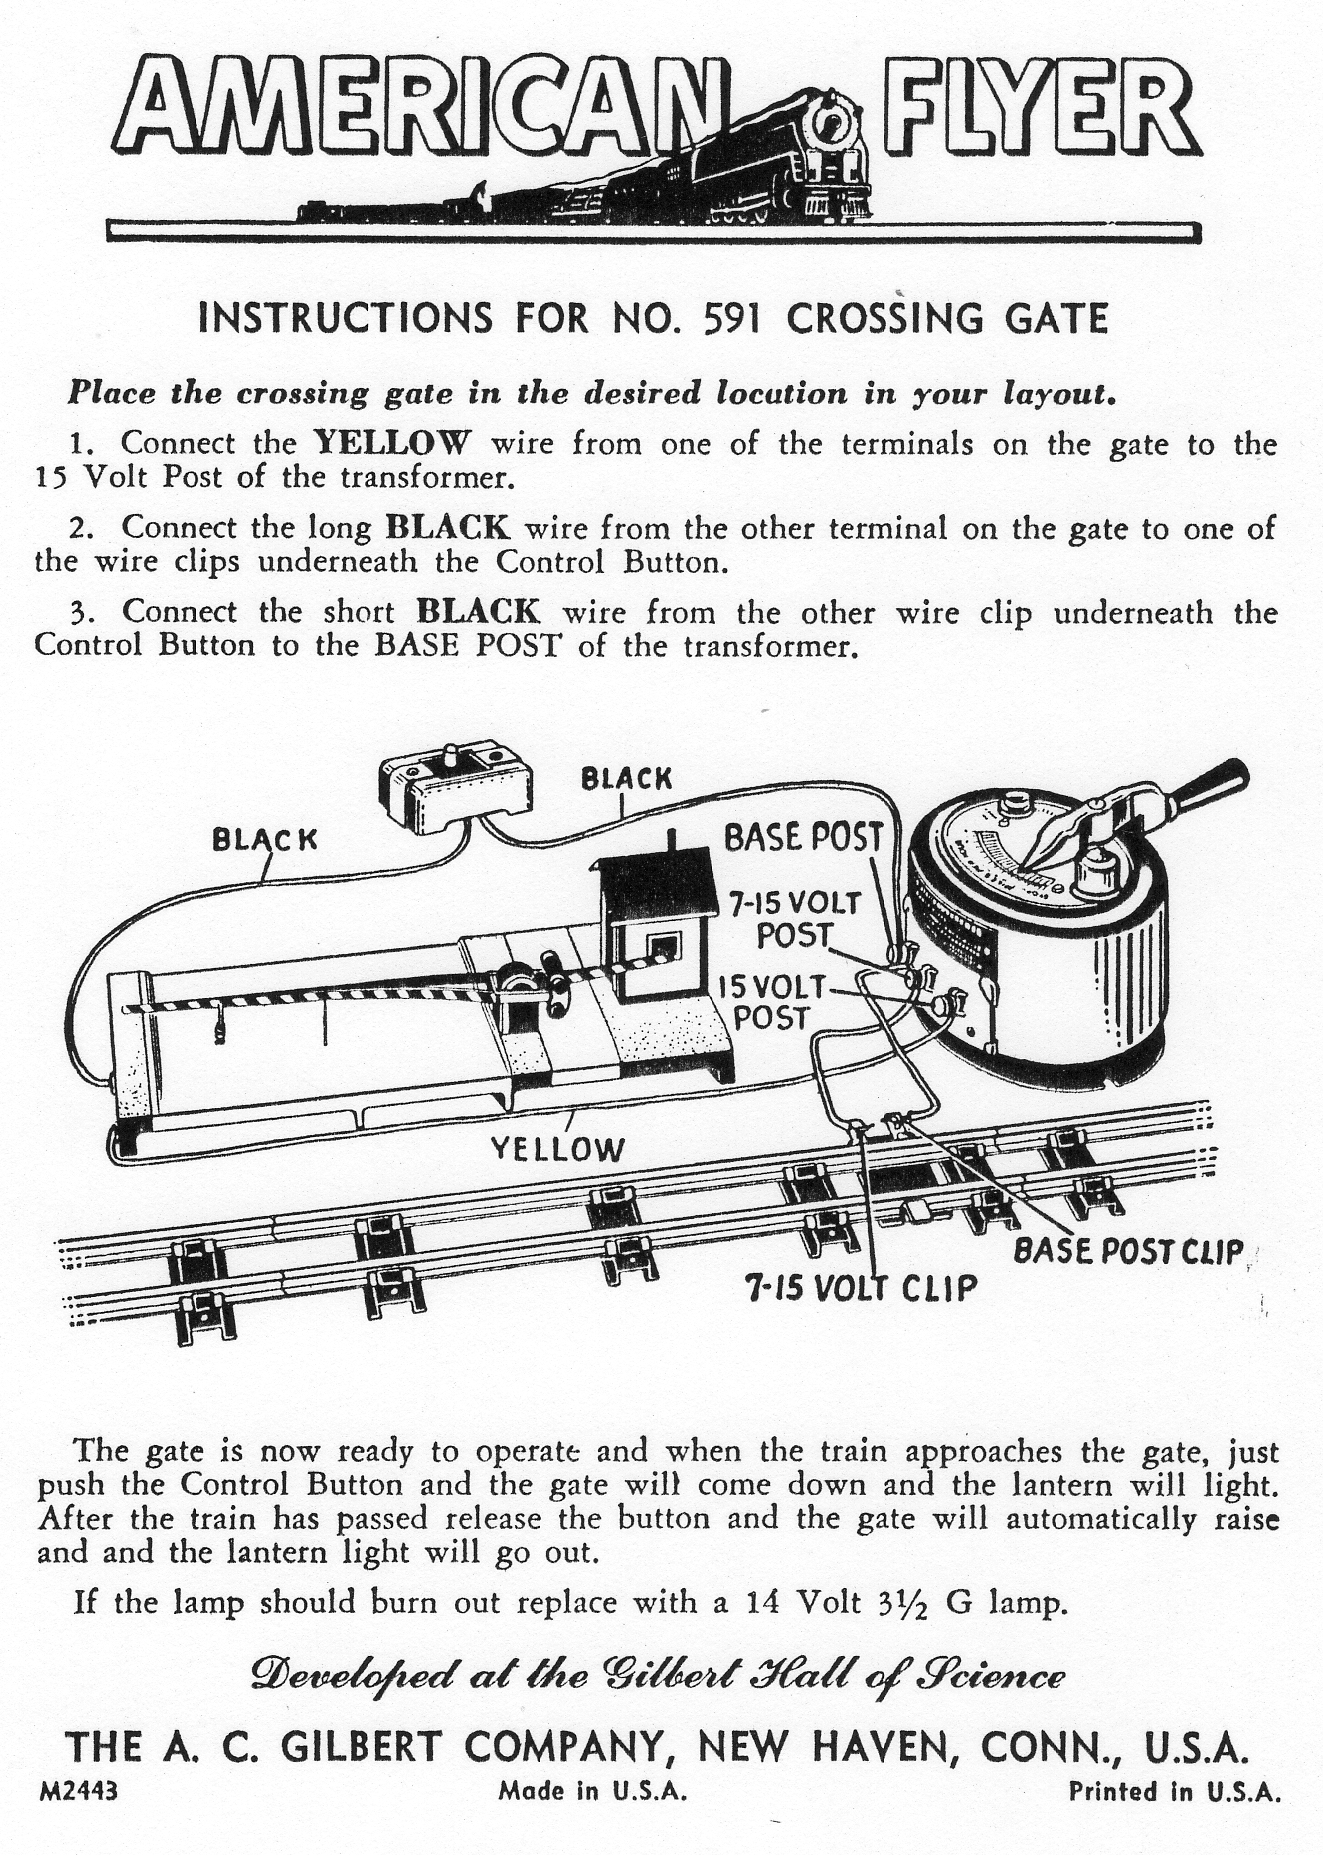 M2443 591 Crossing Gate Instructions Lo Res 001 american flyer wiring instructions traindr american flyer steam engine wiring diagram at soozxer.org